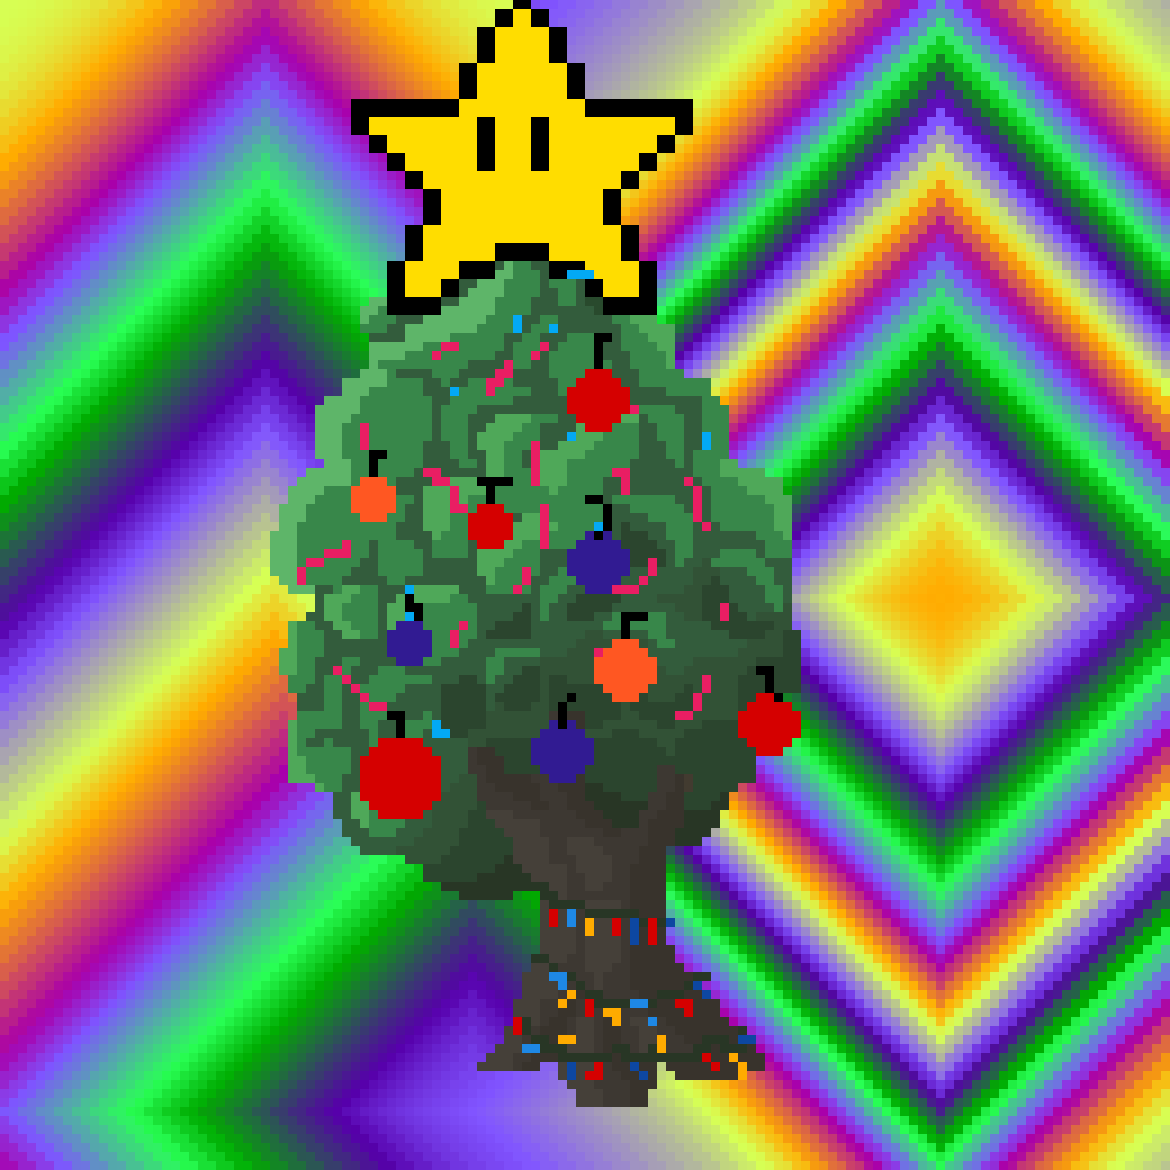 Christmas tree with lights by JakAttack